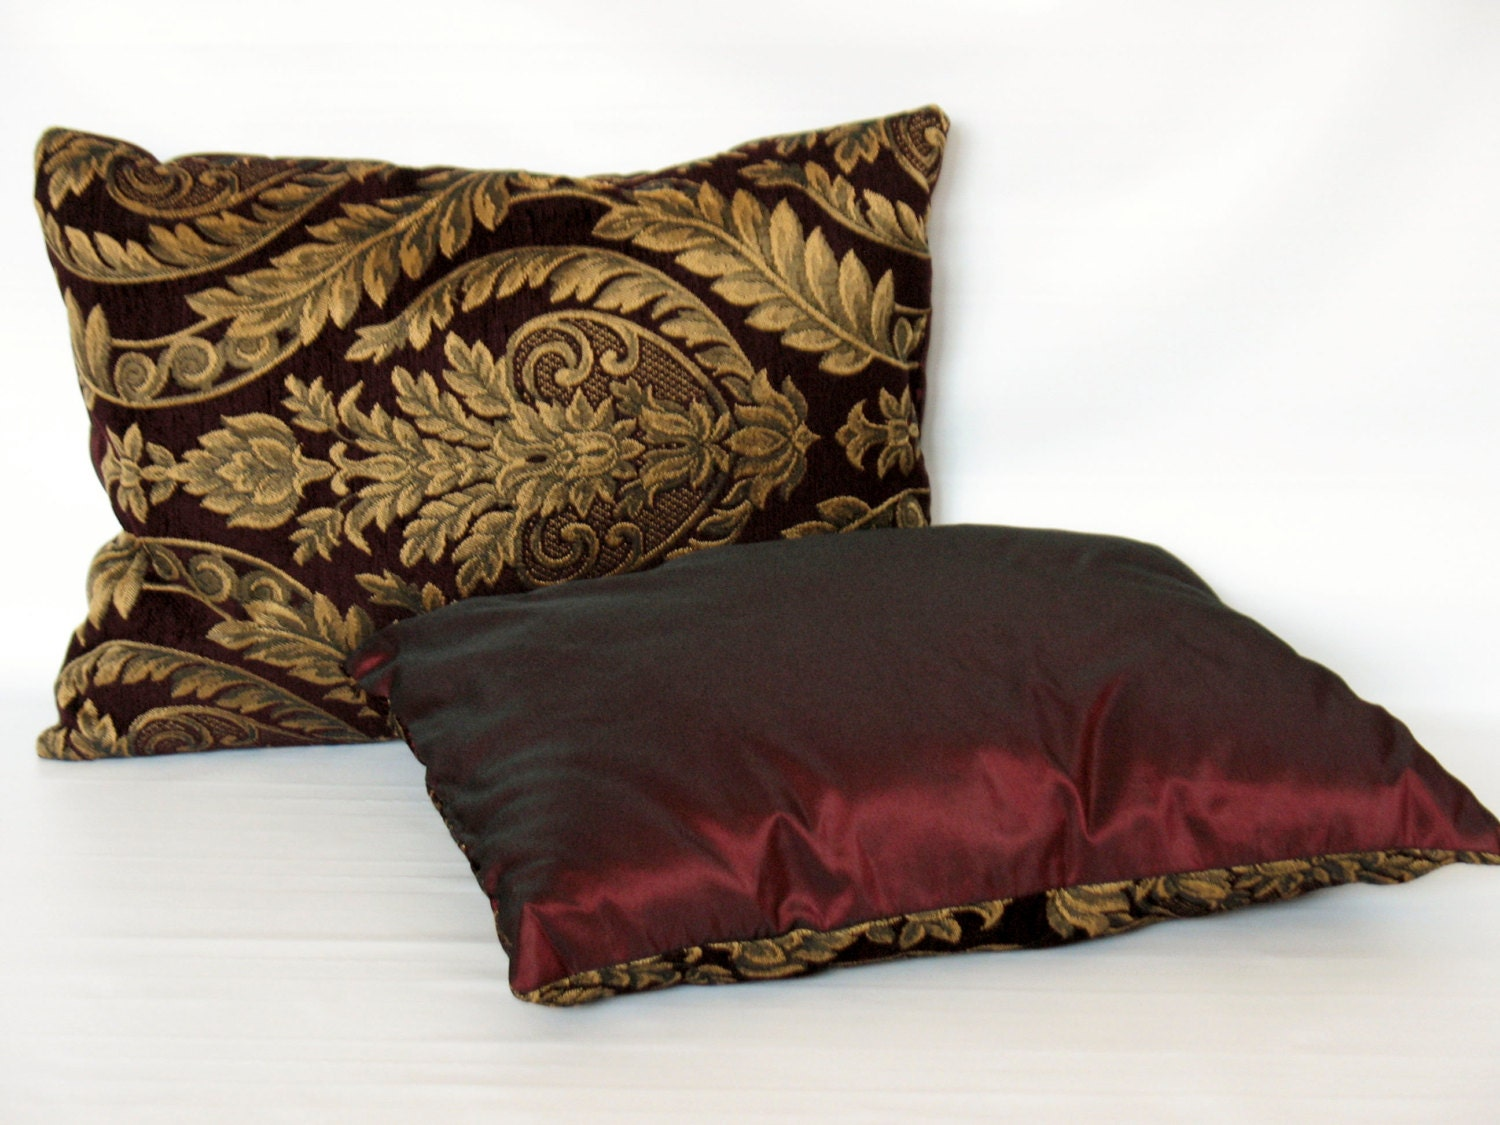 Gold and Burgundy Decorative Pillow with Classic Leaf and